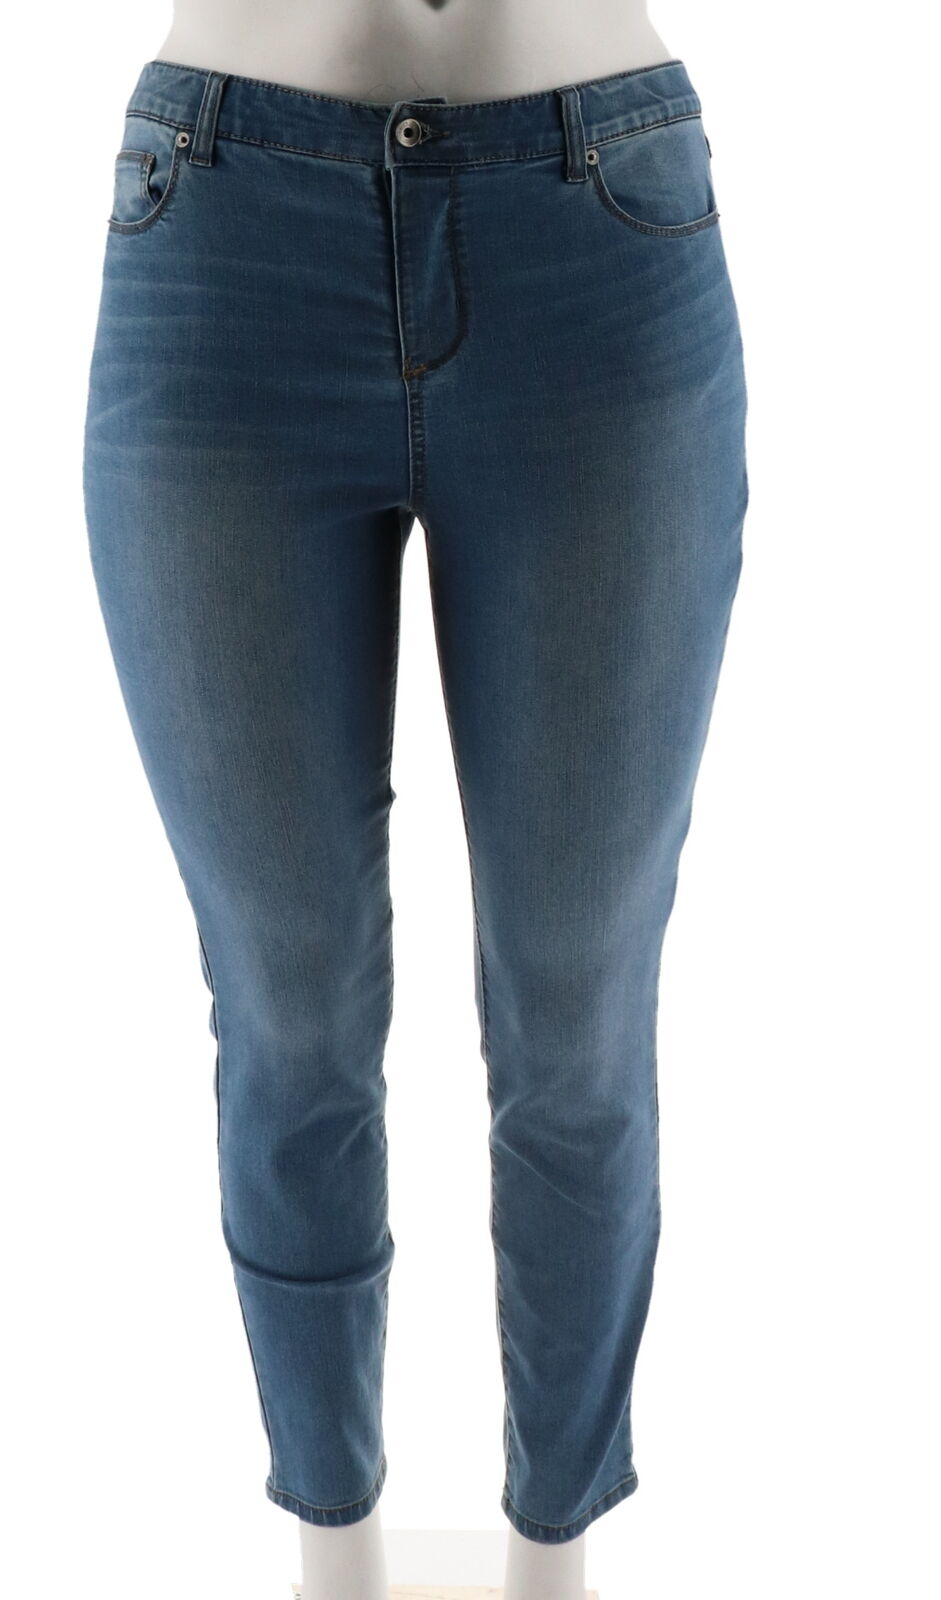 Kelly Clinton Kelly 5 Tasche Caviglia Jeans Jeans Jeans Medio Indaco 4 Nuovo A297974 093cc4